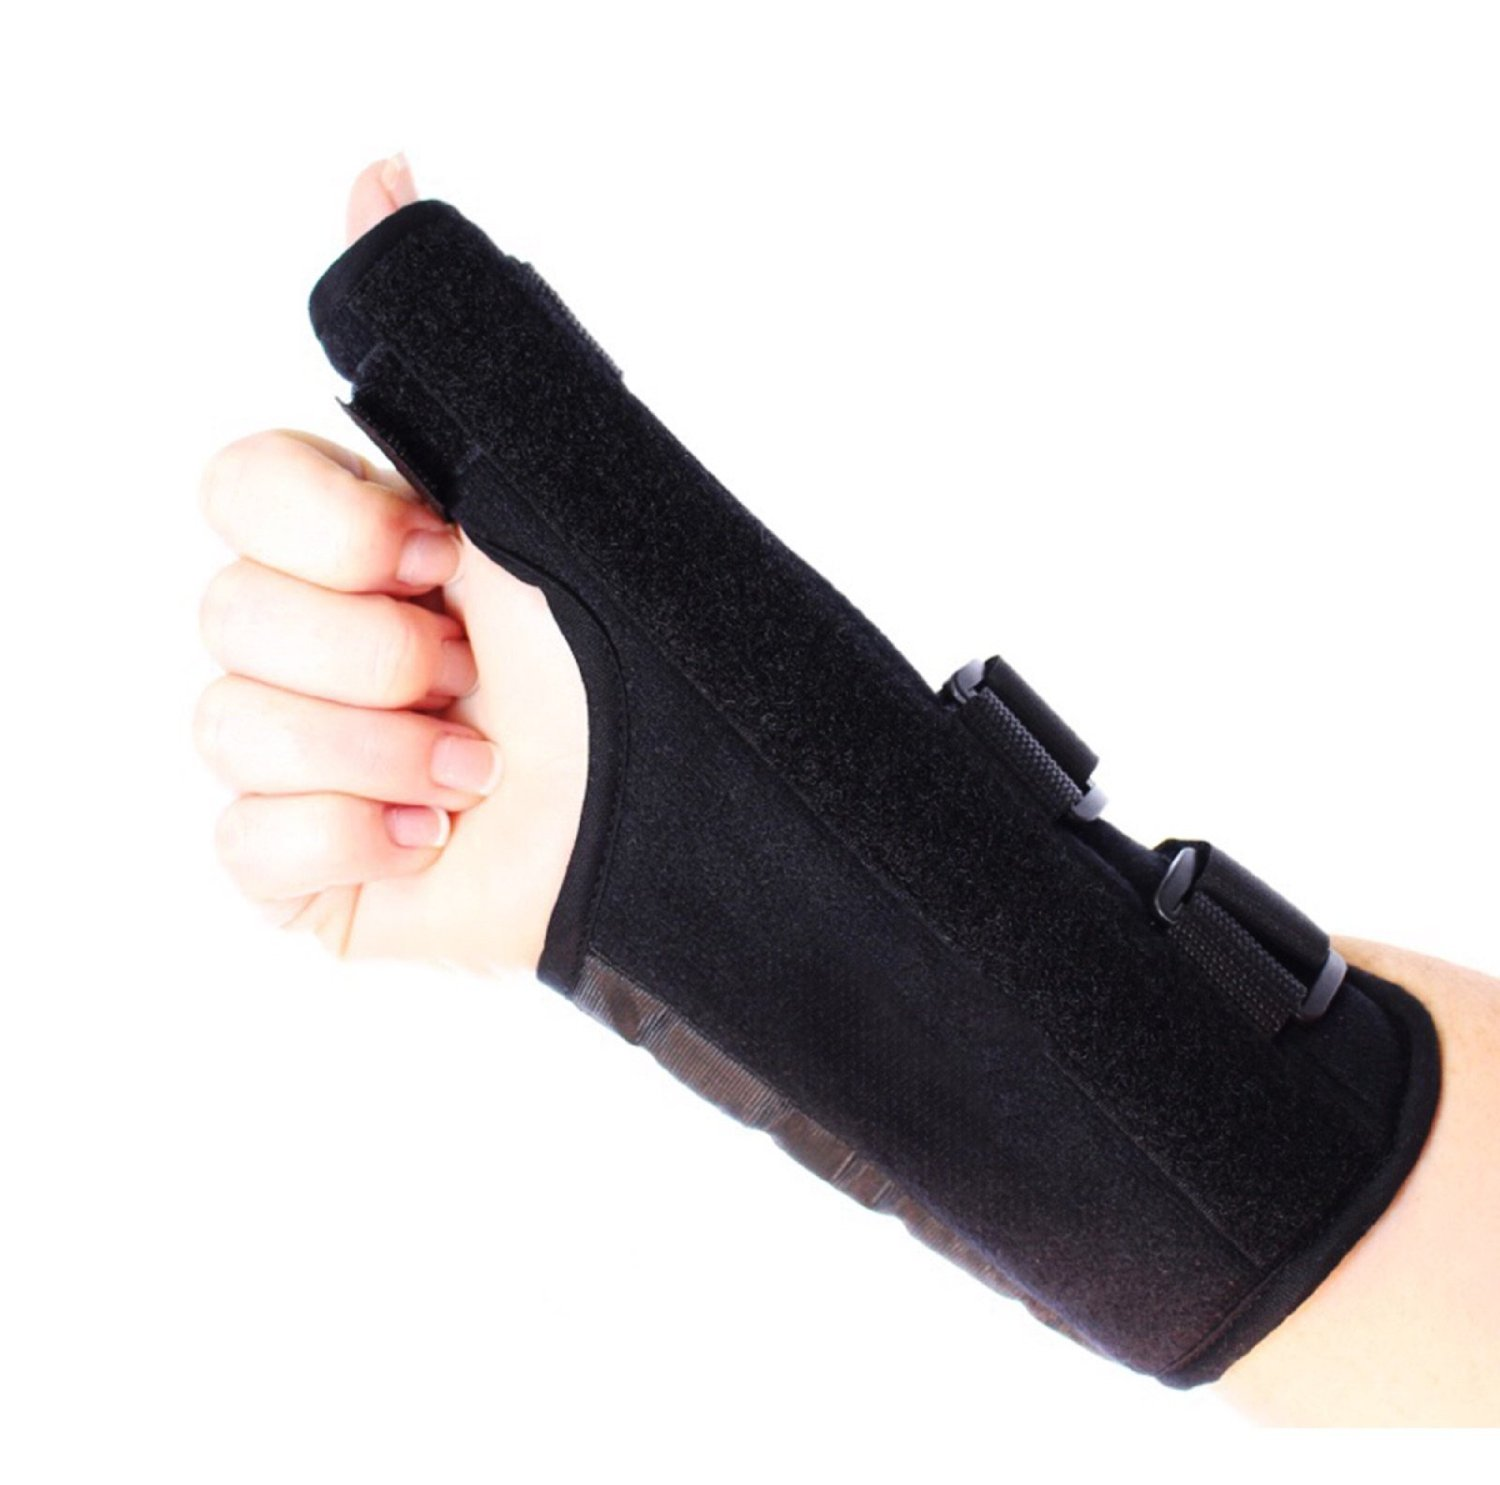 Comfort Care Thumb Support Brace - Right Hand - Fitness - Rheumatoid Arthritis - Training - Health - Beauty - Men - Women - Hands - Treatment - Exercise - Joint - Wellness - Muscle - Hurt - Severe - Aching - Swollen - Painful - Personal - Sore - Remedies - Rheumatism - Finger - Aids - Relief -